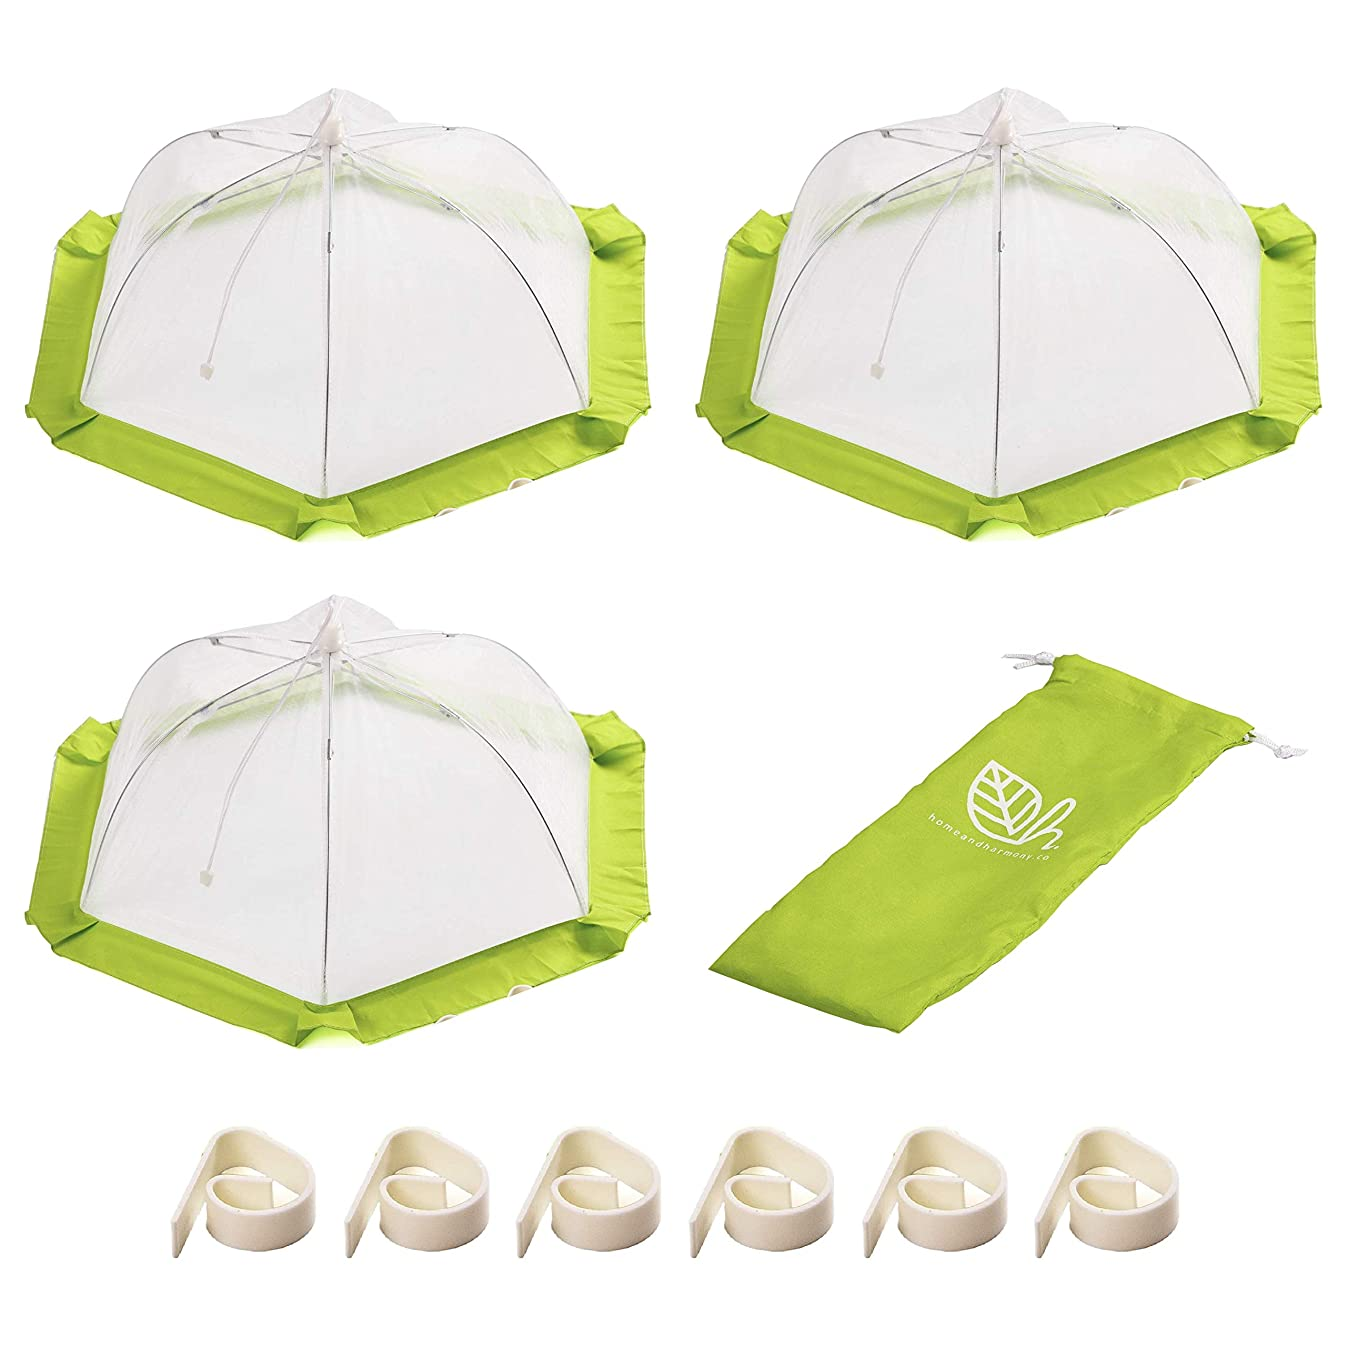 Mesh Food Covers that Won't Blow Away (3 Pack) | Large Food Covers for Outdoors and Indoors | Food Covers from Flies | Food Tent for Parties | Food Cover Wind Resistant Clip | Home and Harmony Inc.